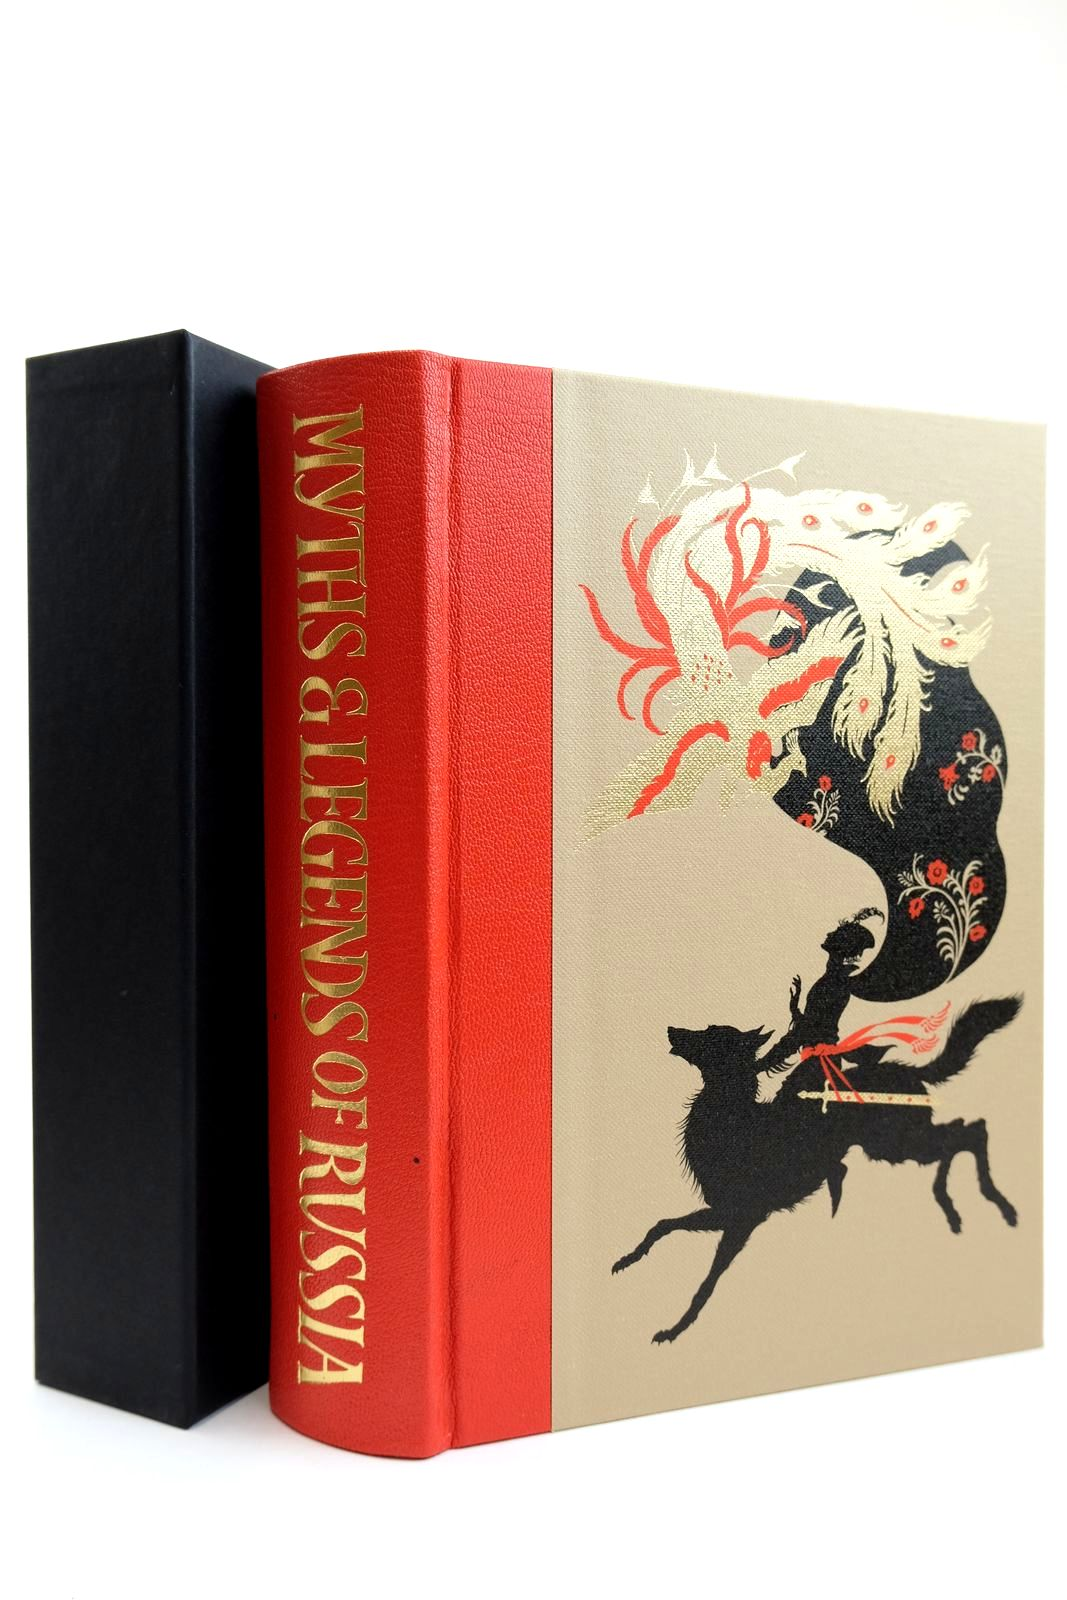 Photo of MYTHS AND LEGENDS OF RUSSIA written by Afanas'Ev, Aleksandr<br />Guterman, Norbert<br />Tatar, Maria illustrated by Puttapipat, Niroot published by Folio Society (STOCK CODE: 2131863)  for sale by Stella & Rose's Books